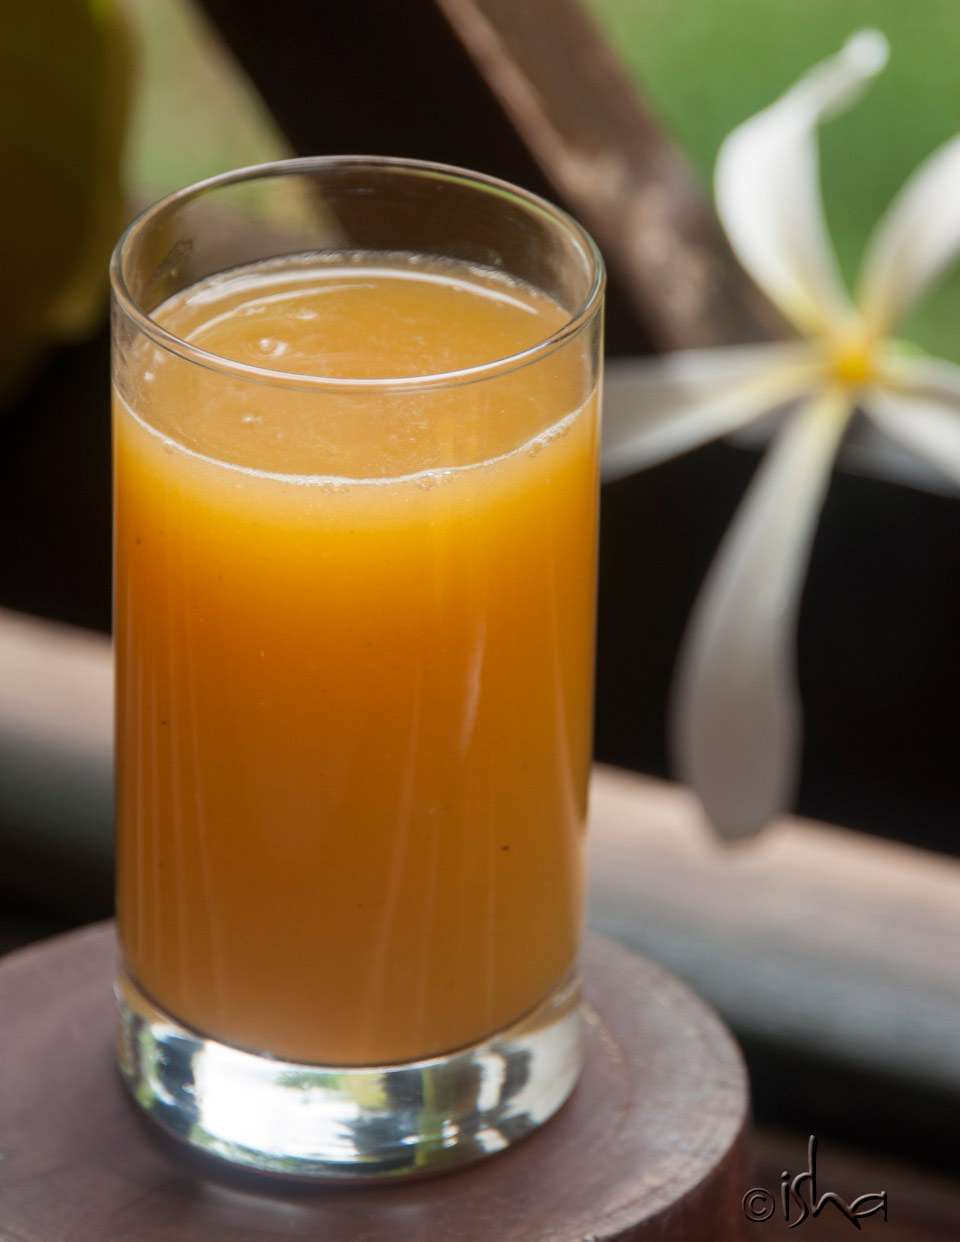 Kairi Panha, Cooked Mango Drink from Maharastra